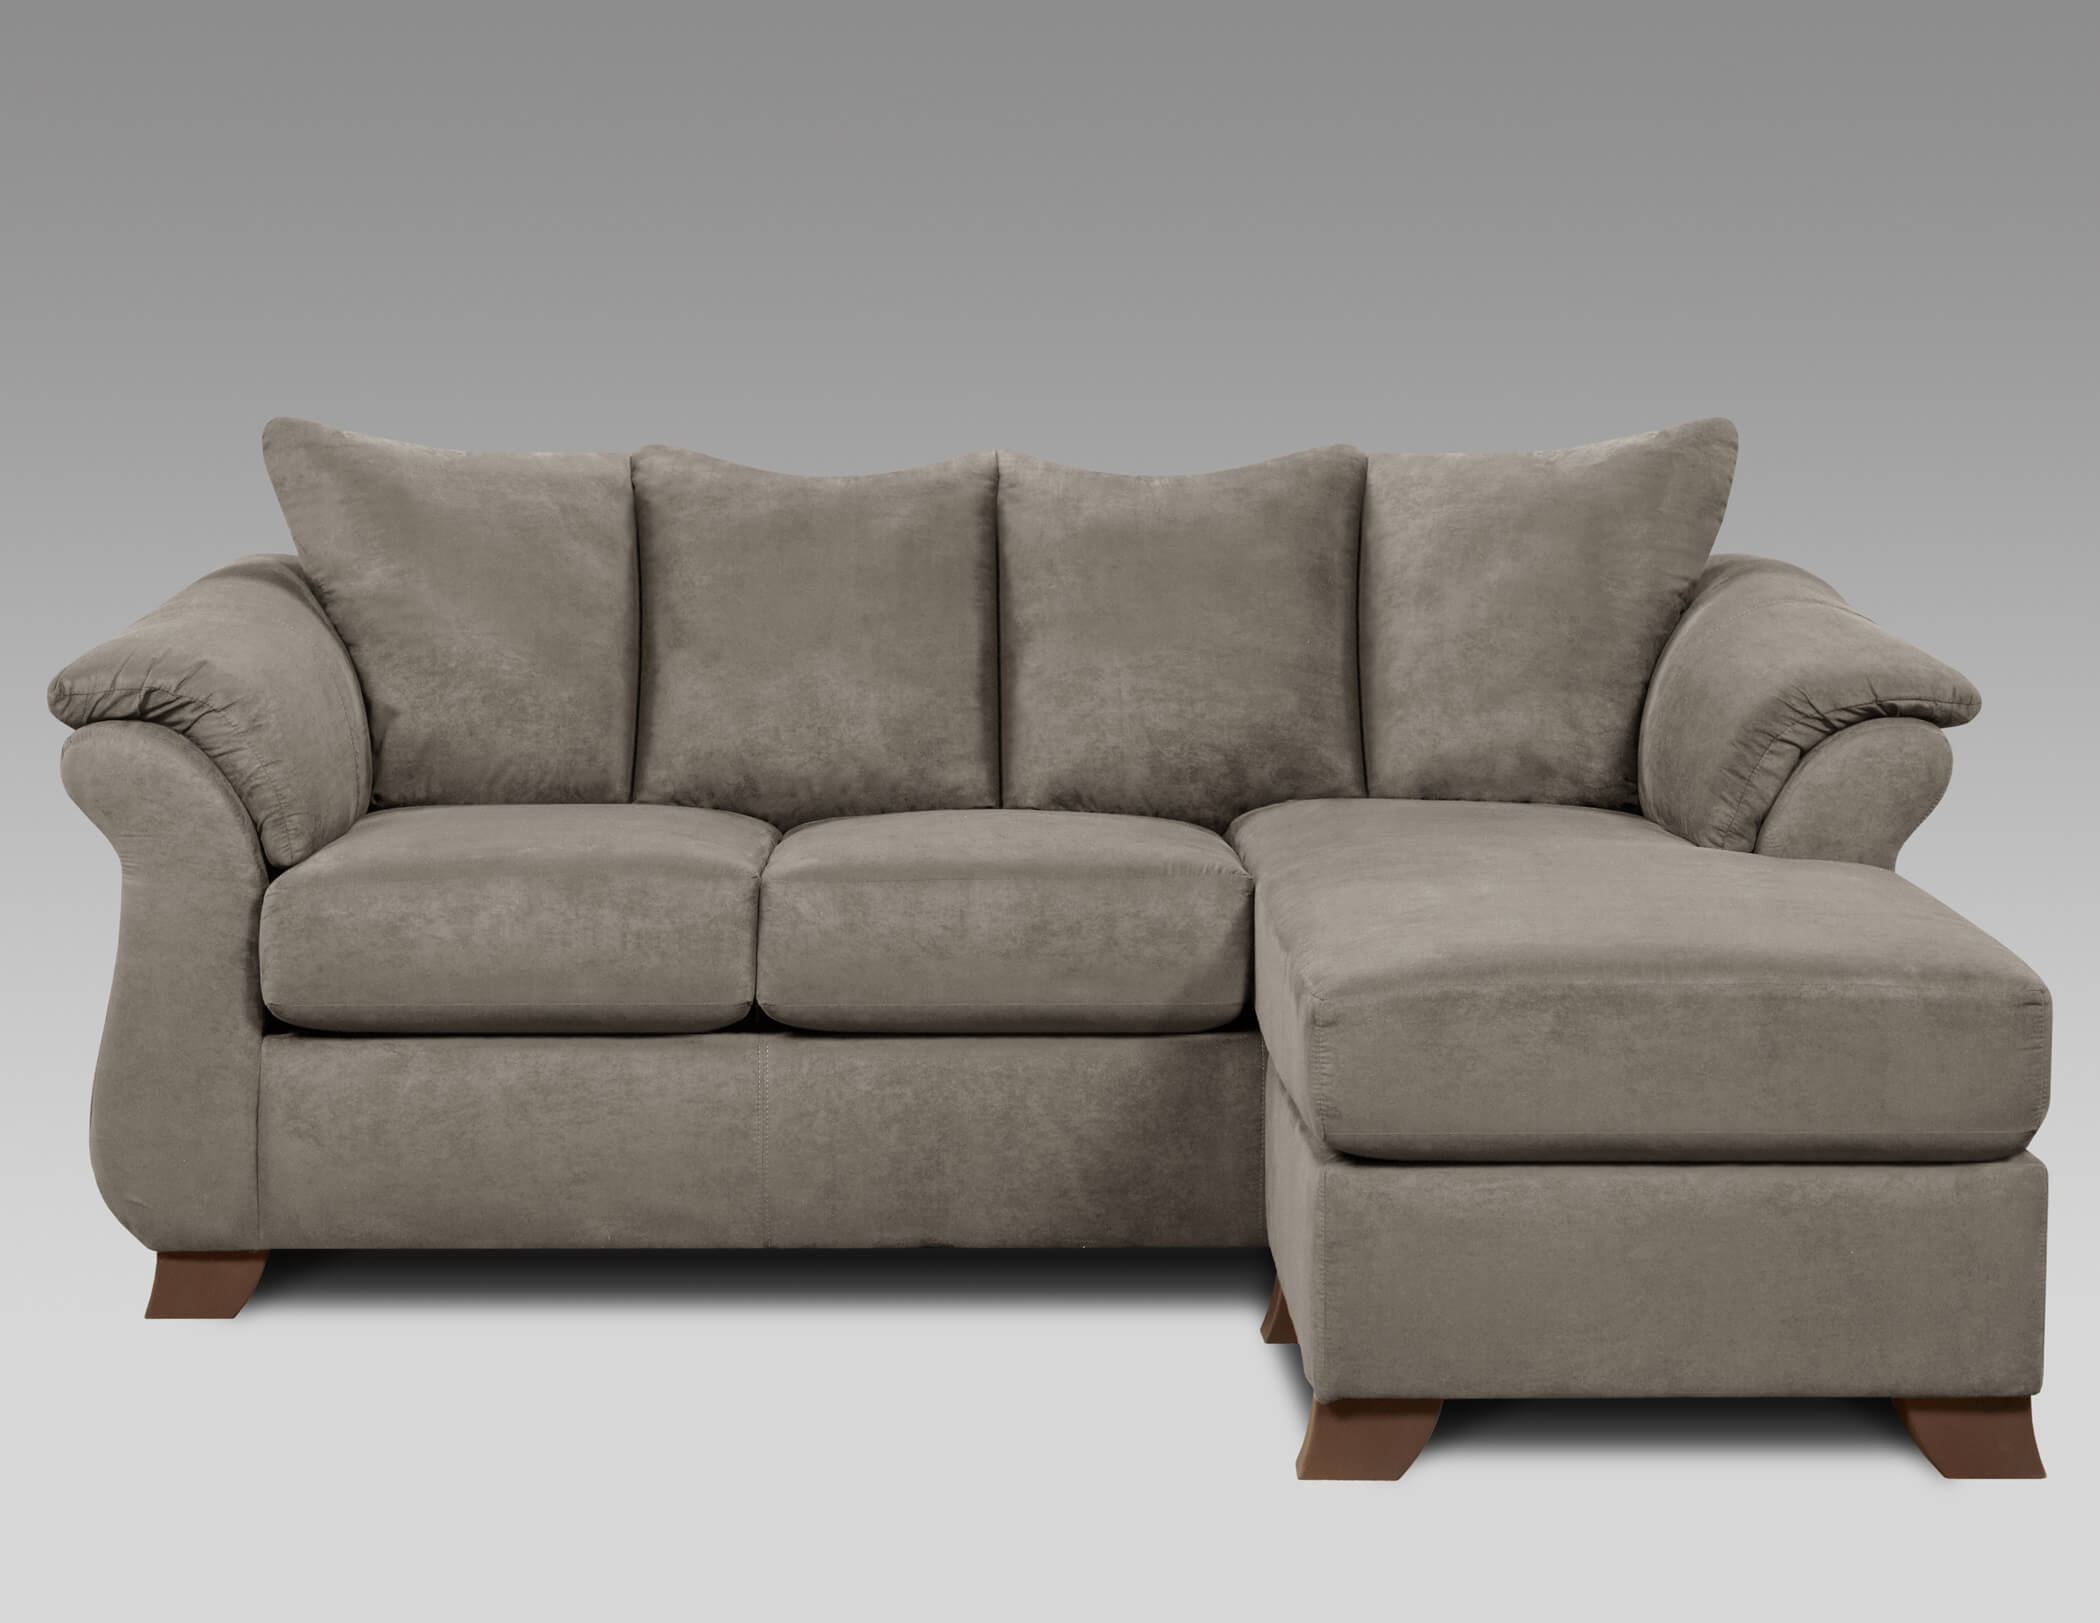 Sofa Set Grau Sensations Grey Sofa Chaise Sectional Sofa Sets